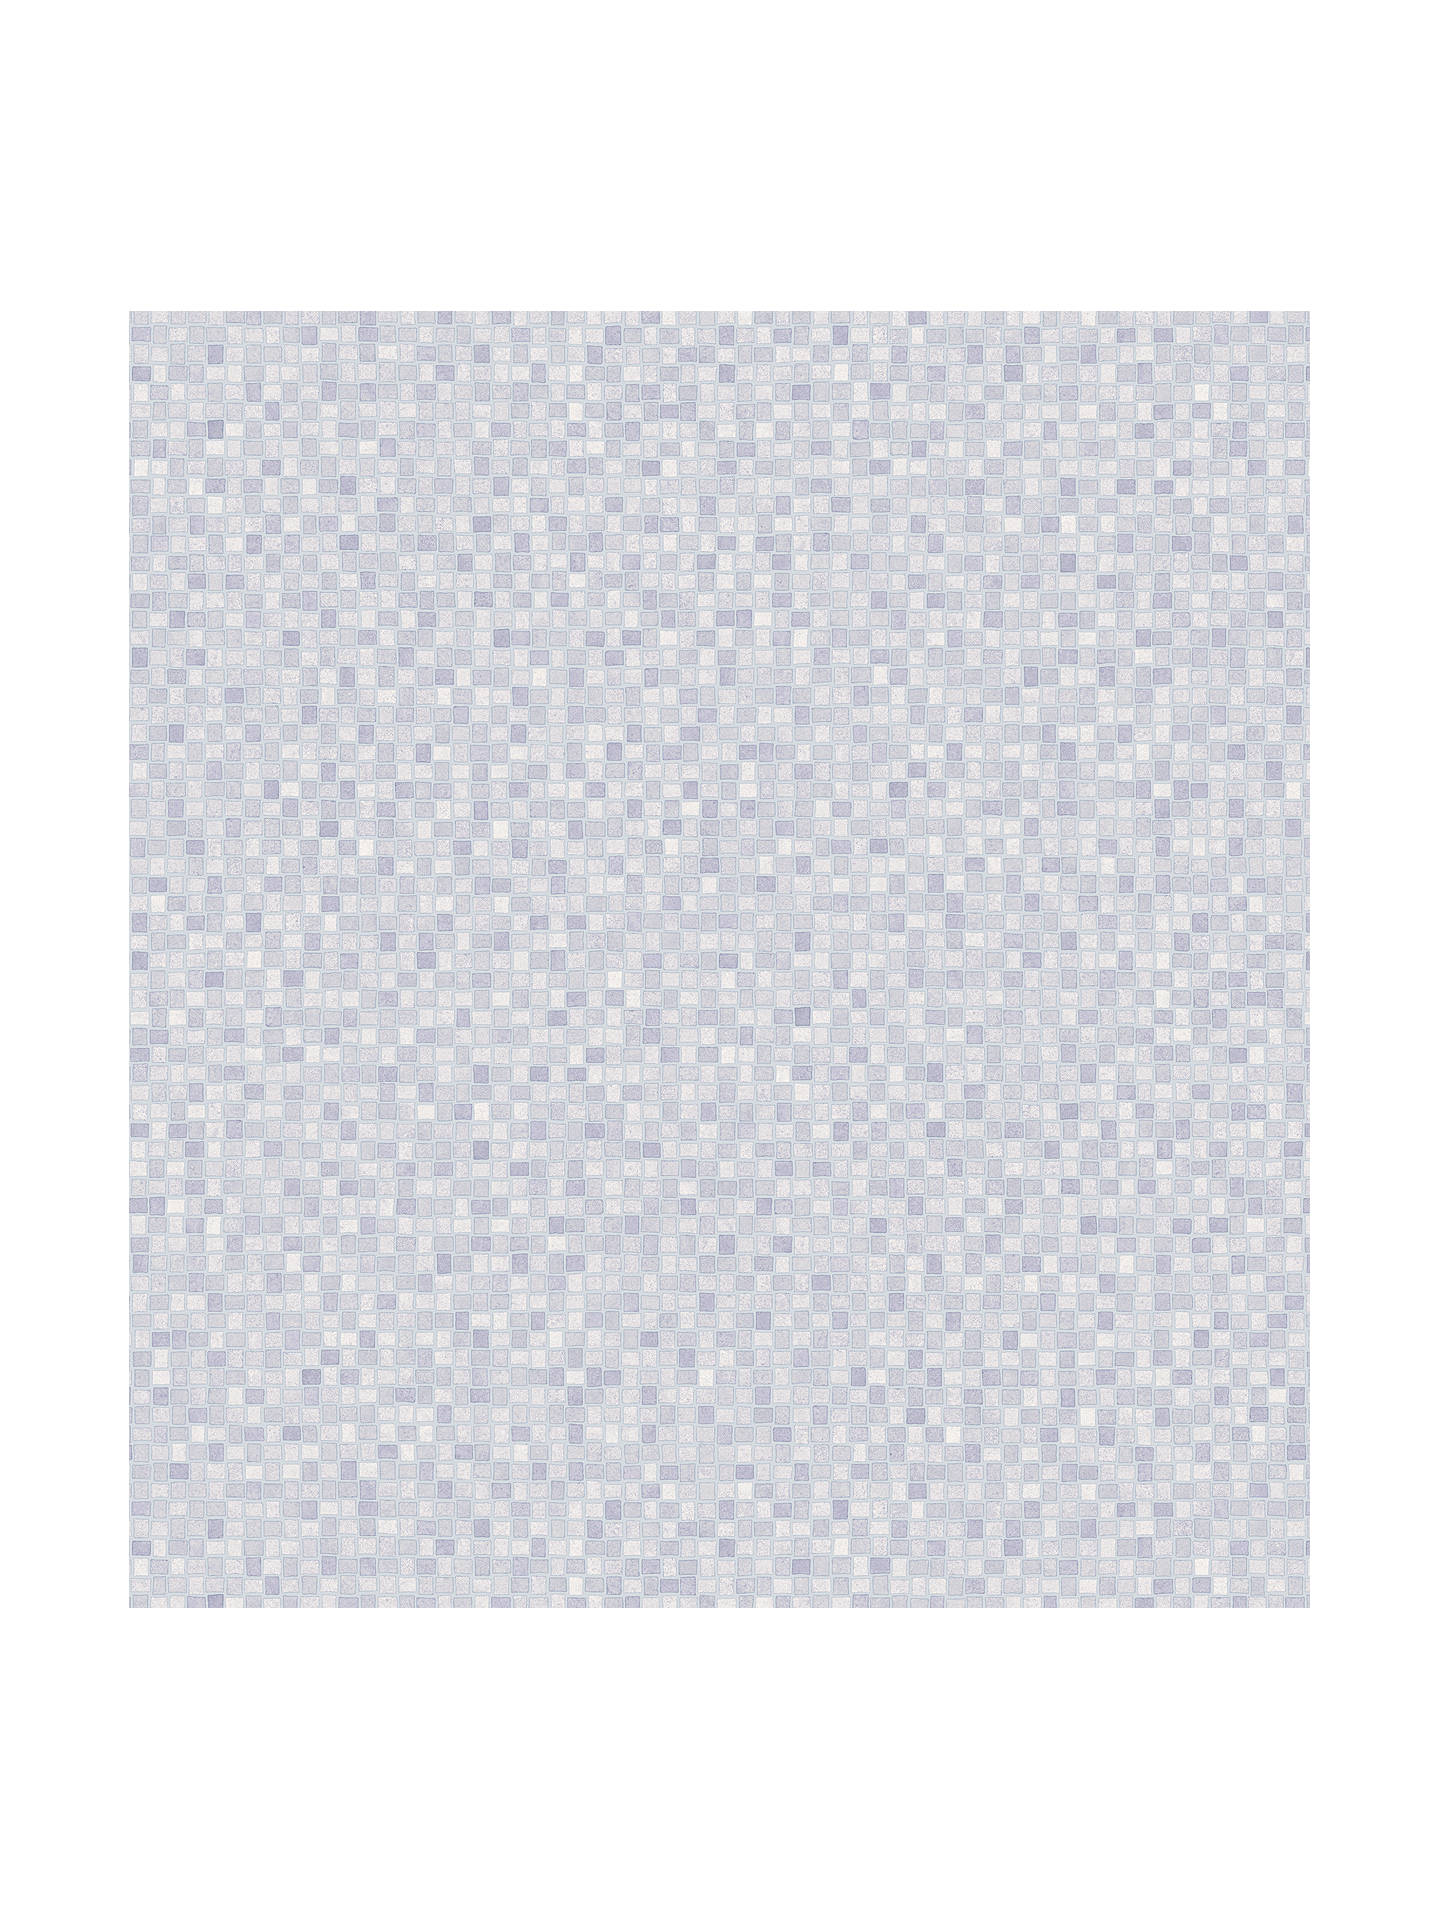 Buy John Lewis & Partners Tile Superior 10 Vinyl Flooring, MP/91 Online at johnlewis.com